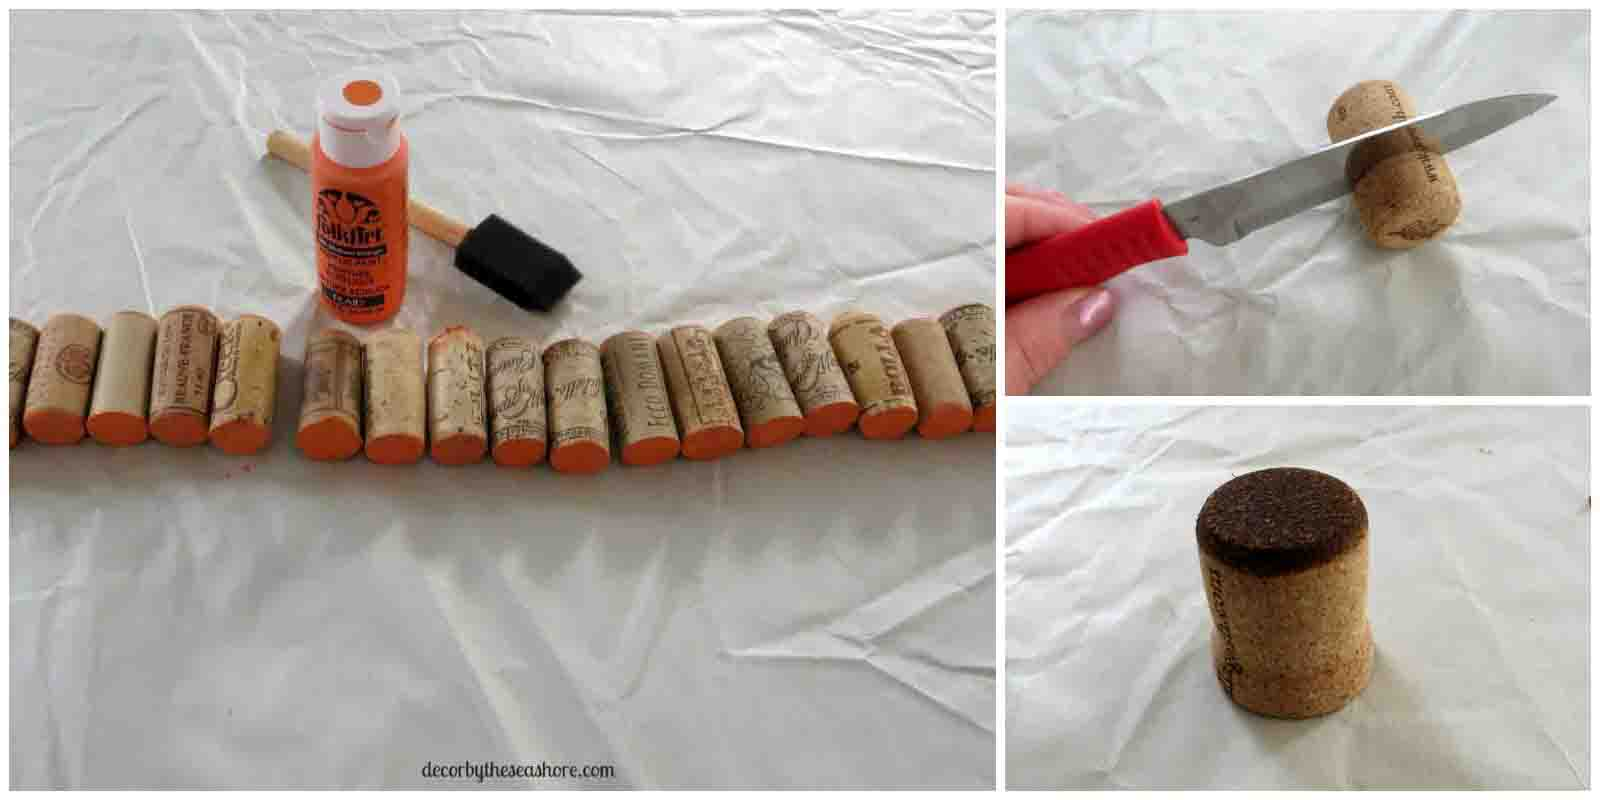 What better way to welcome fall than with a DIY wine cork pumpkin? I can never get enough of these adorable wine cork crafts, and this one is the perfect addition to my fall decor!   decorbytheseashore.com